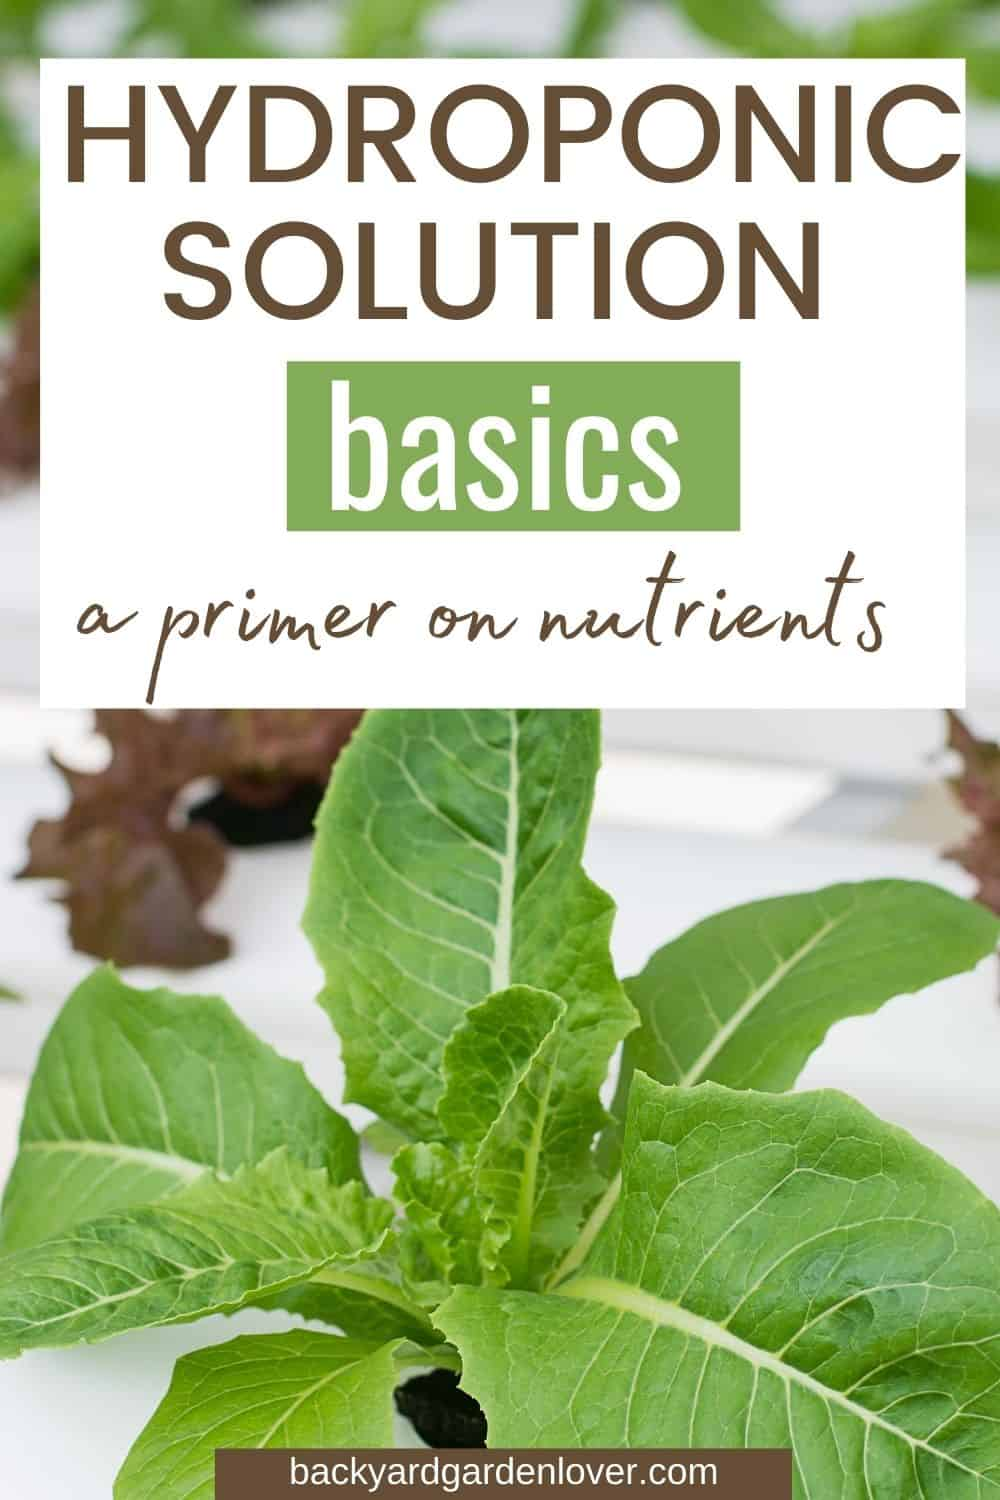 Hydroponic solution basics -  a primer on nutrients-  Pinterest image